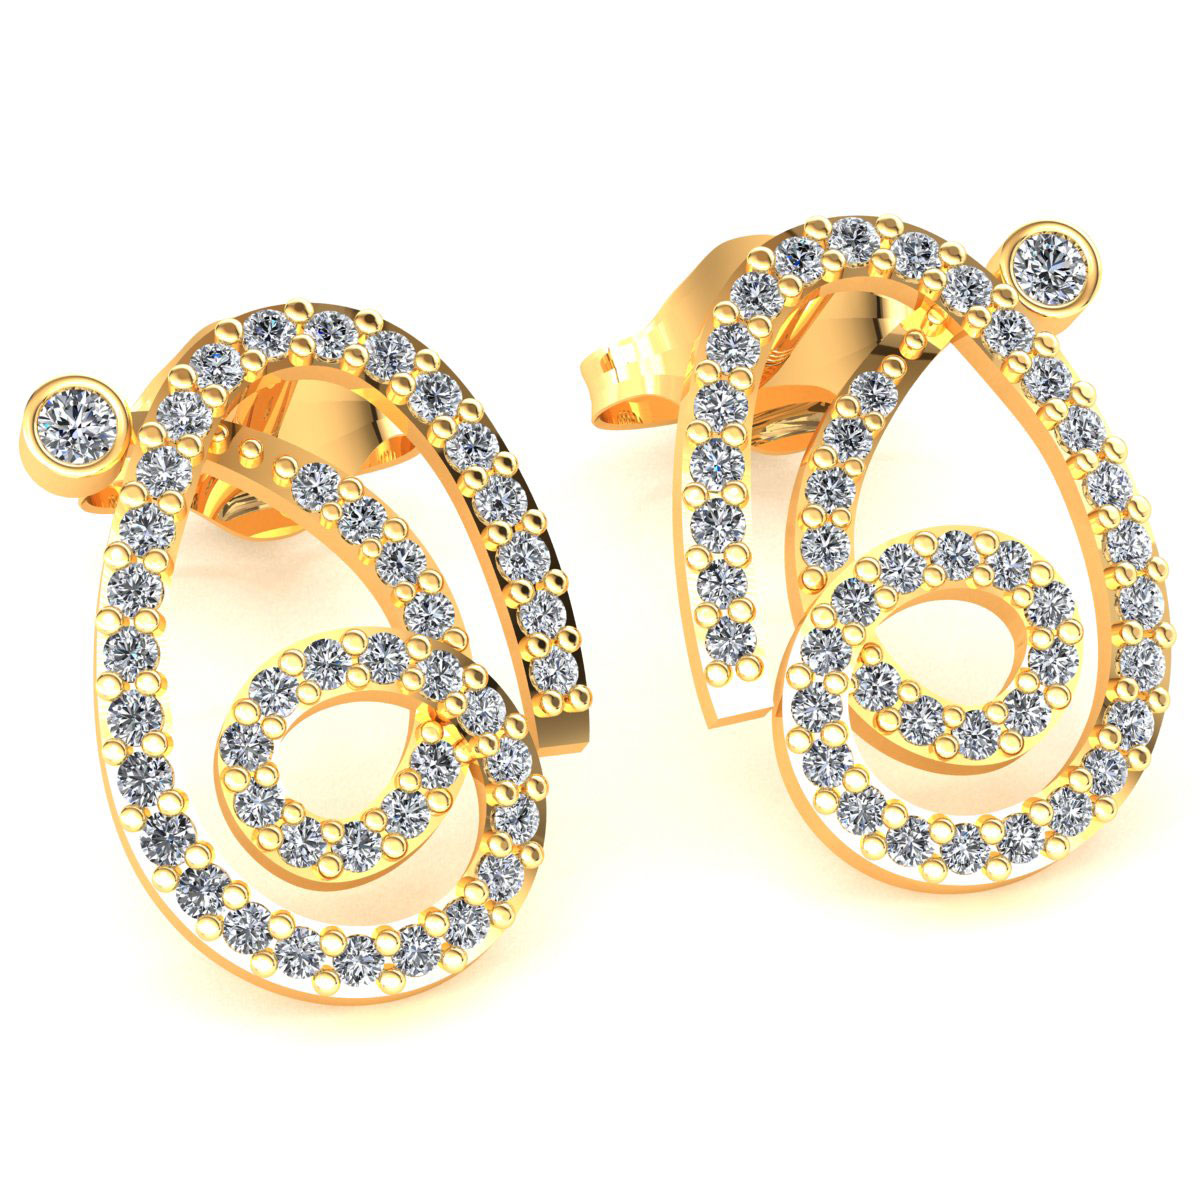 Symbol Of The Brand Pave 3.85 Carats Round Brilliant Cut Diamonds Necklace Earrings Set In 14k Gold Fine Jewellery